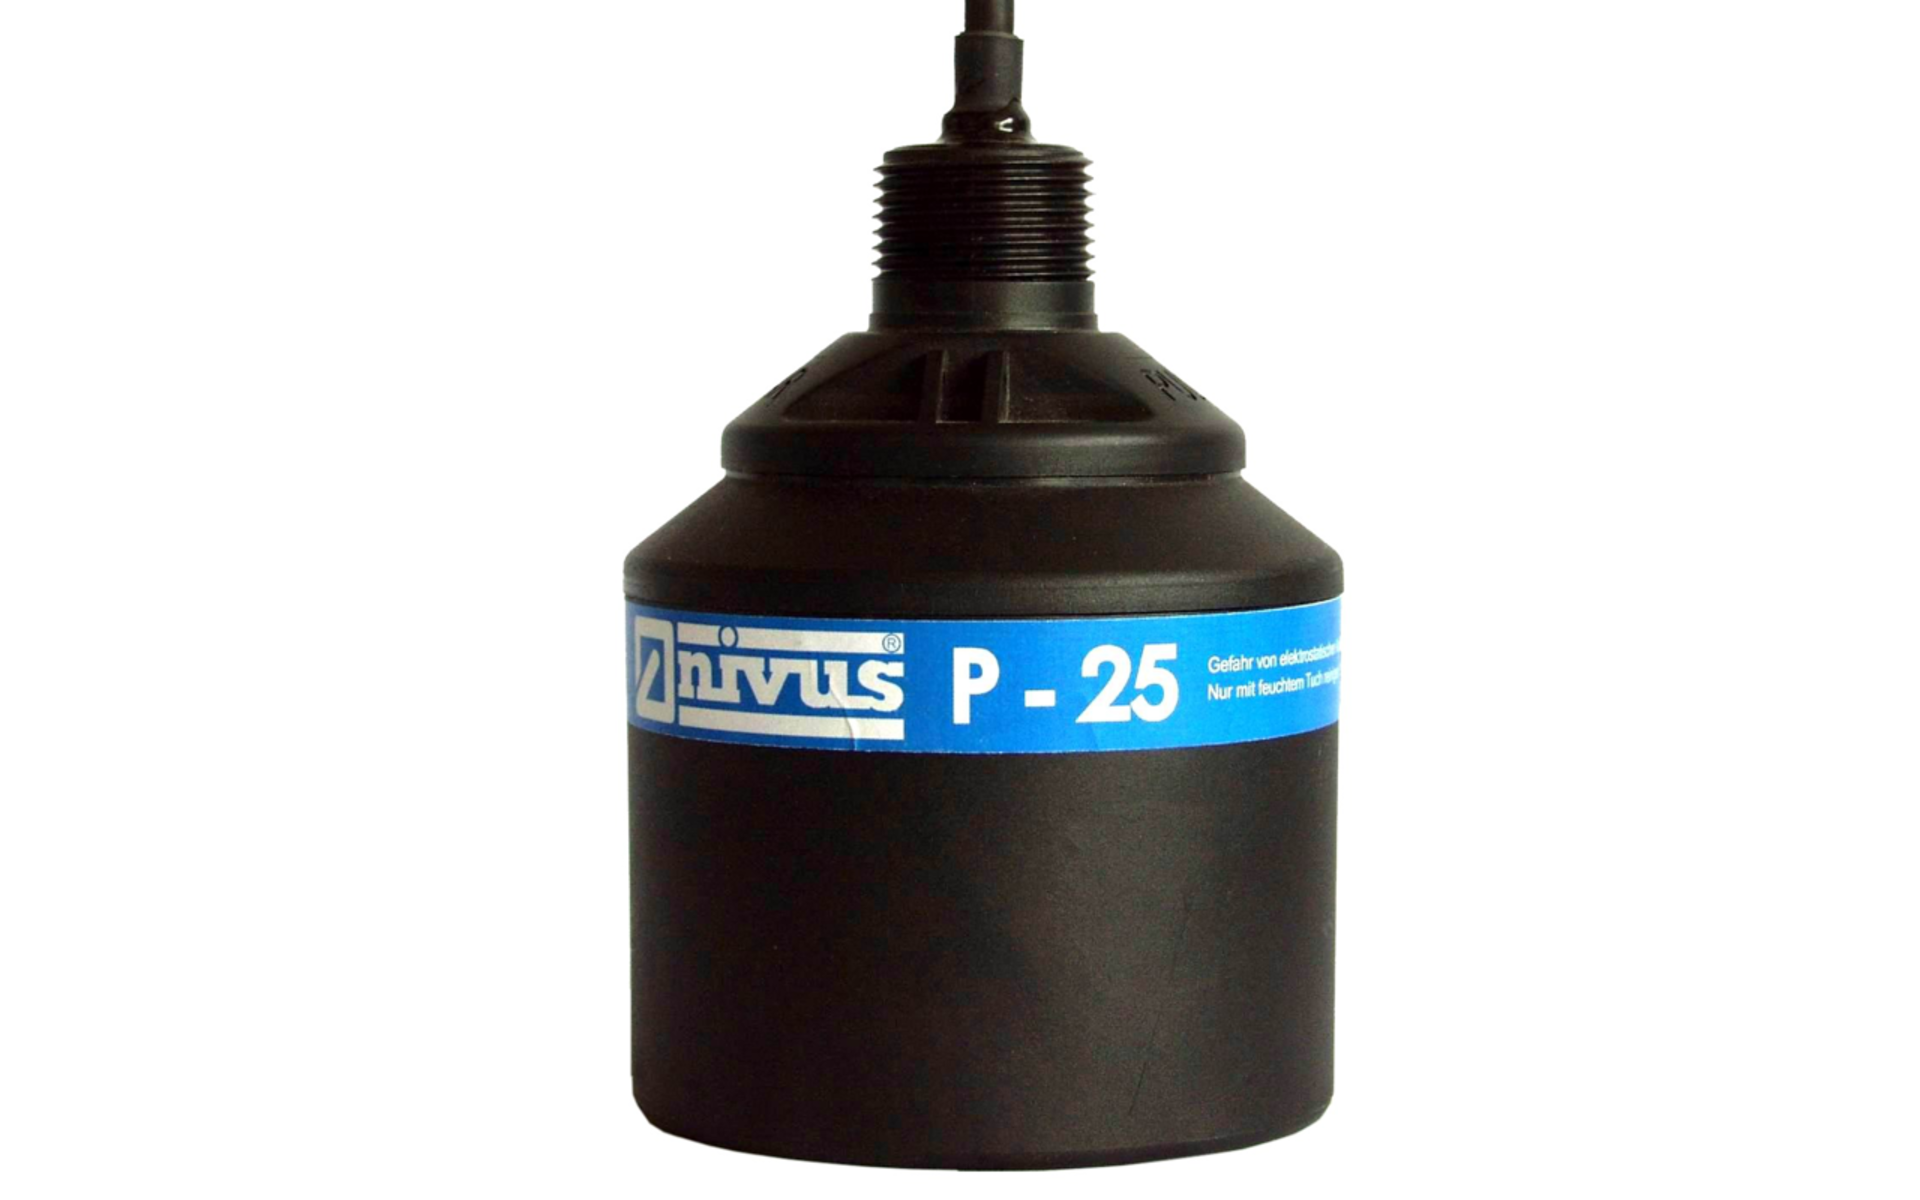 P Series Sensors 25 Khz Ultrasound Transducer Electronics And Electrical Engineering P25 Sensor Measurement Range 06 M